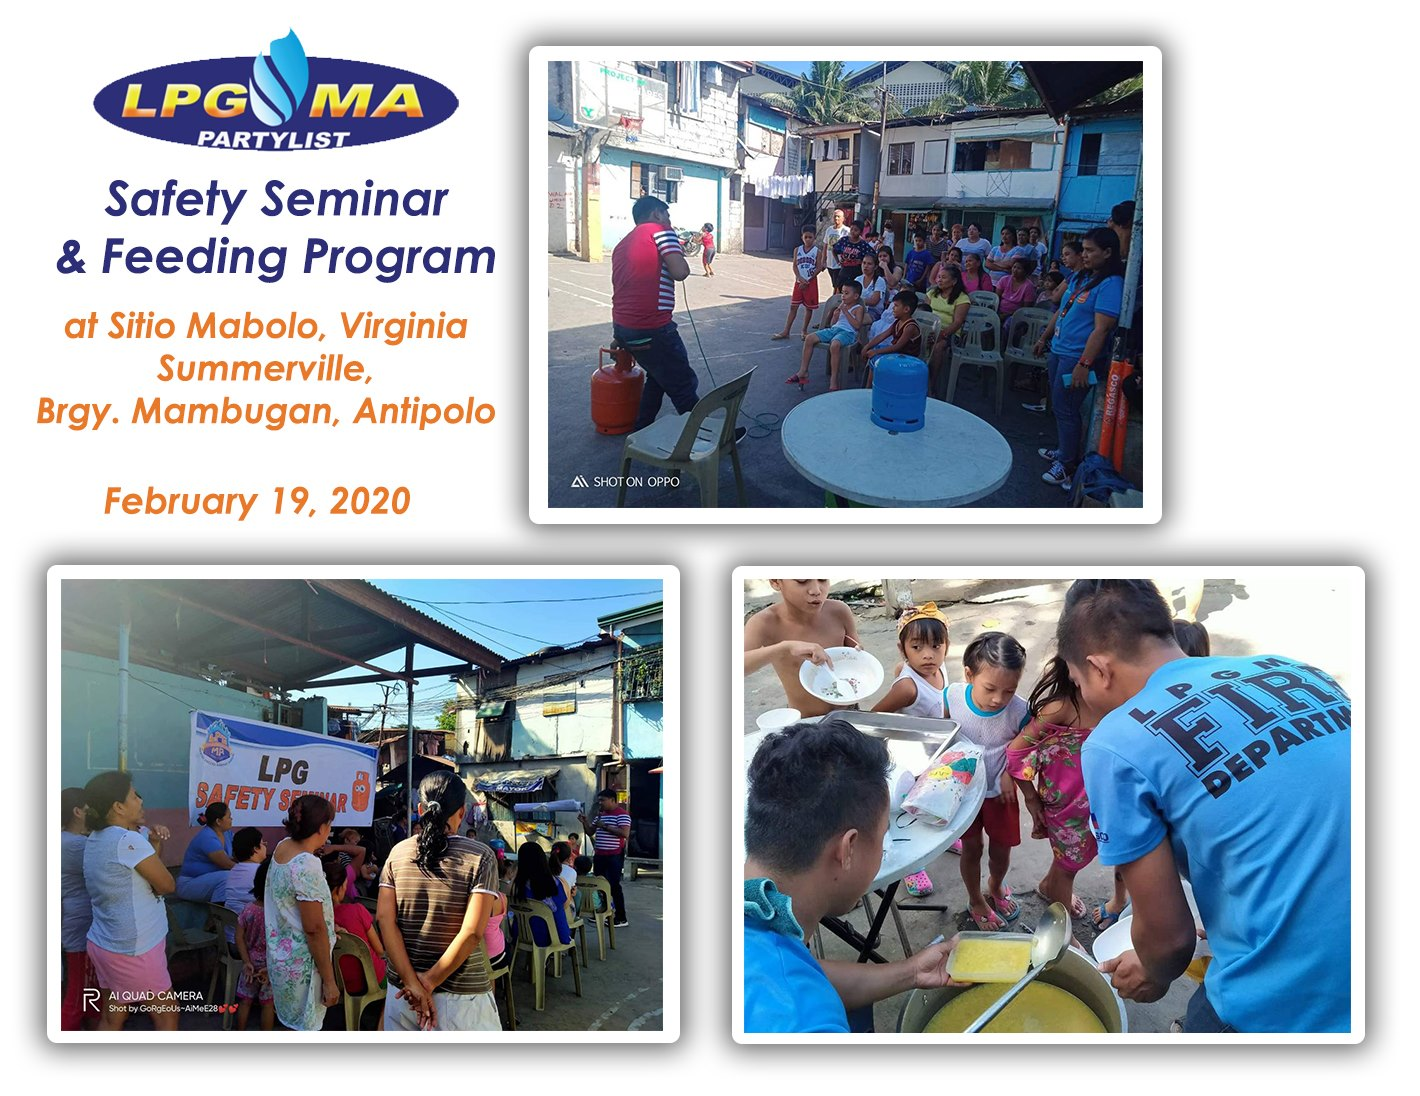 LPGMA holds Safety Seminar and Feeding Program